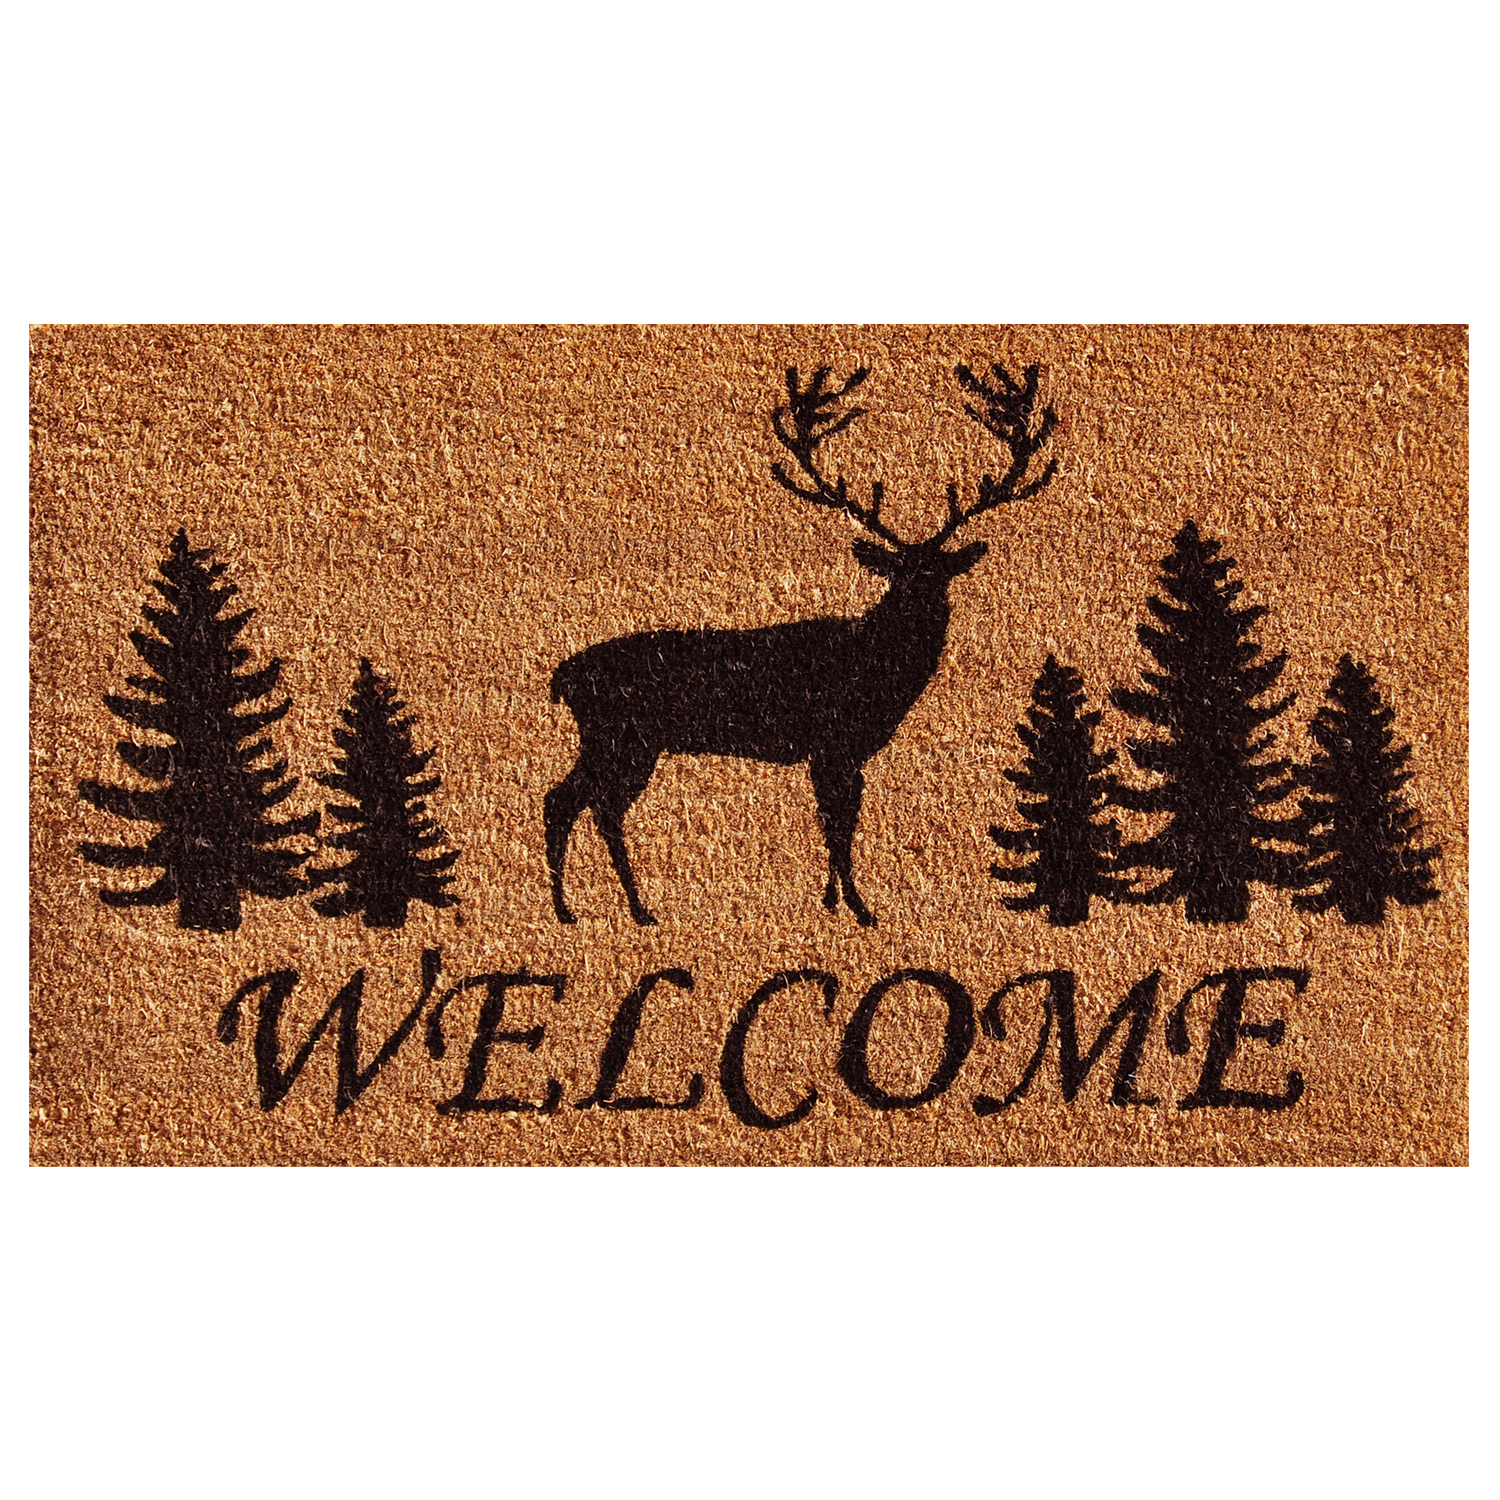 Elk Forest Welcome Doormat